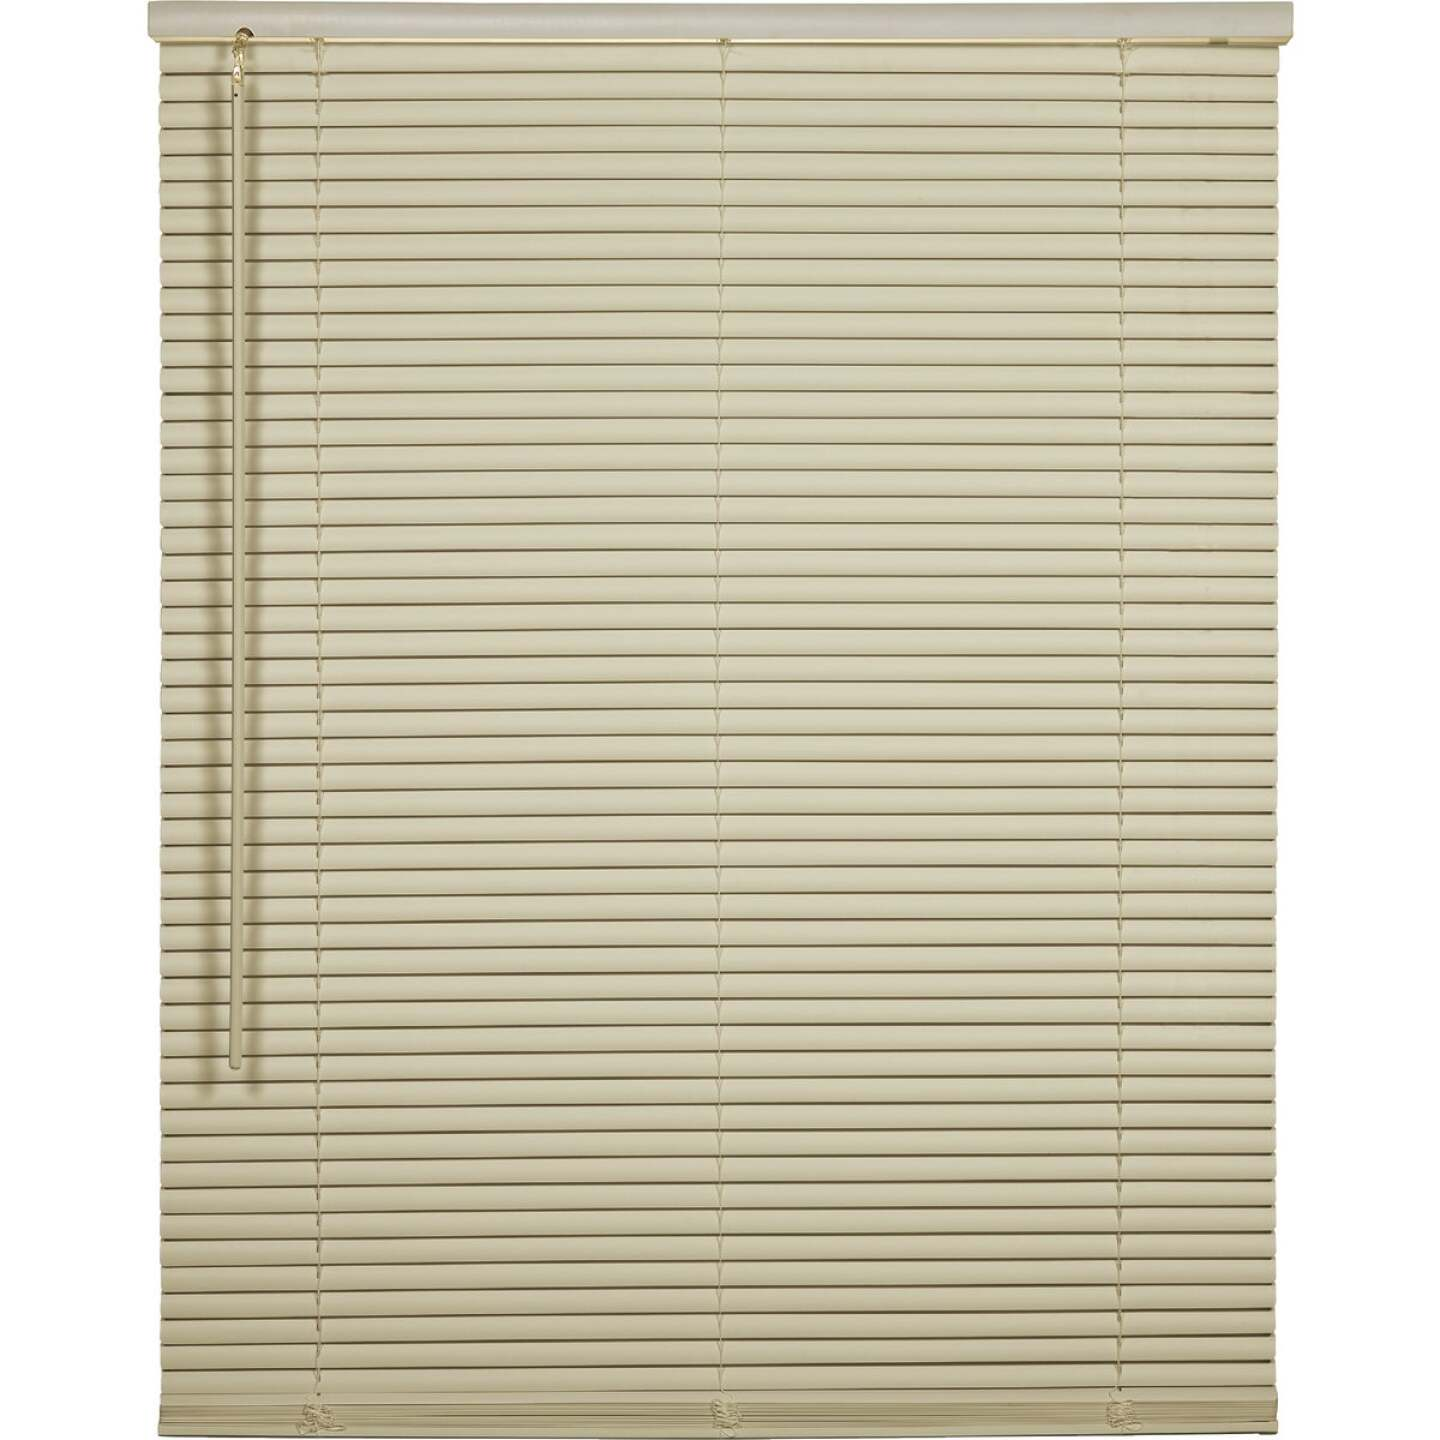 Home Impressions 52 In. x 64 In. x 1 In. Vanilla Vinyl Light Filtering Cordless Mini Blind Image 1